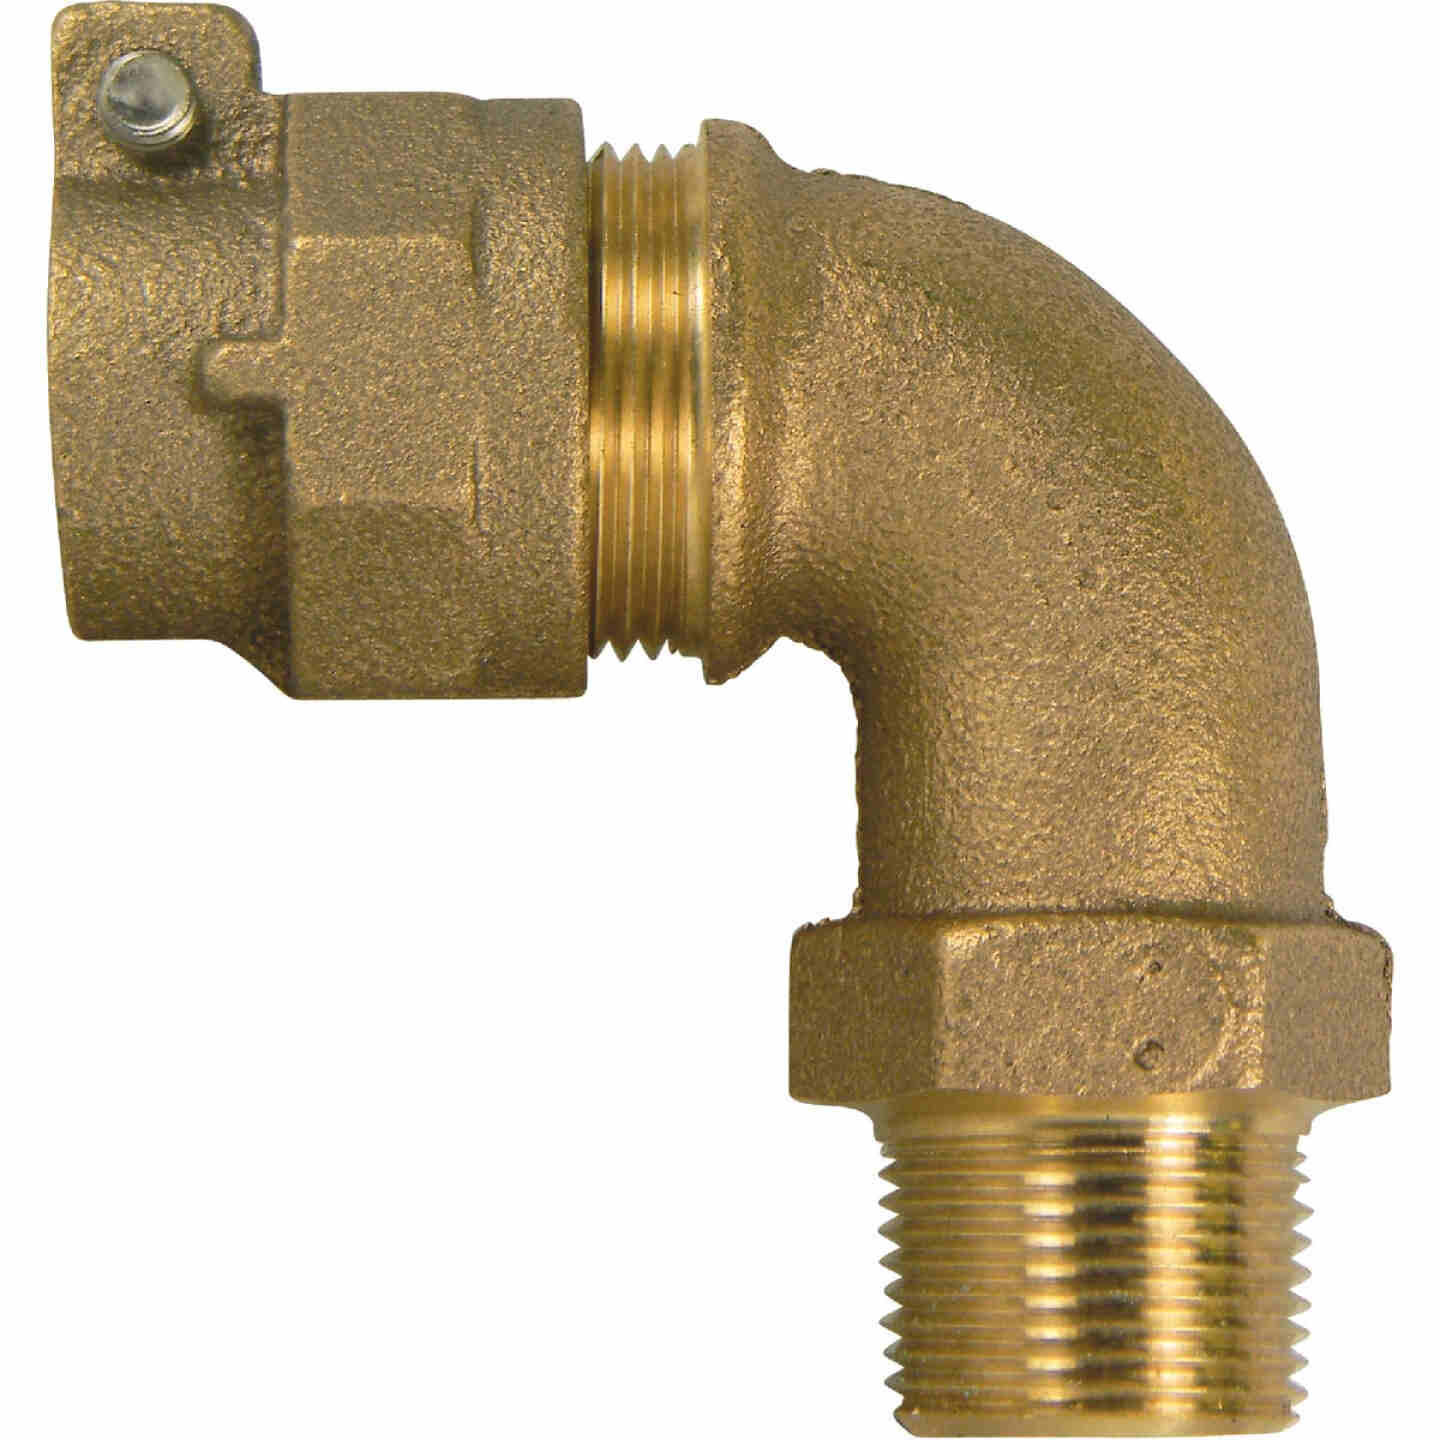 A Y McDonald 1 In. 90 Deg. Brass Elbow, MIP Polyethylene Pipe Connector (1/4 Bend) Image 1